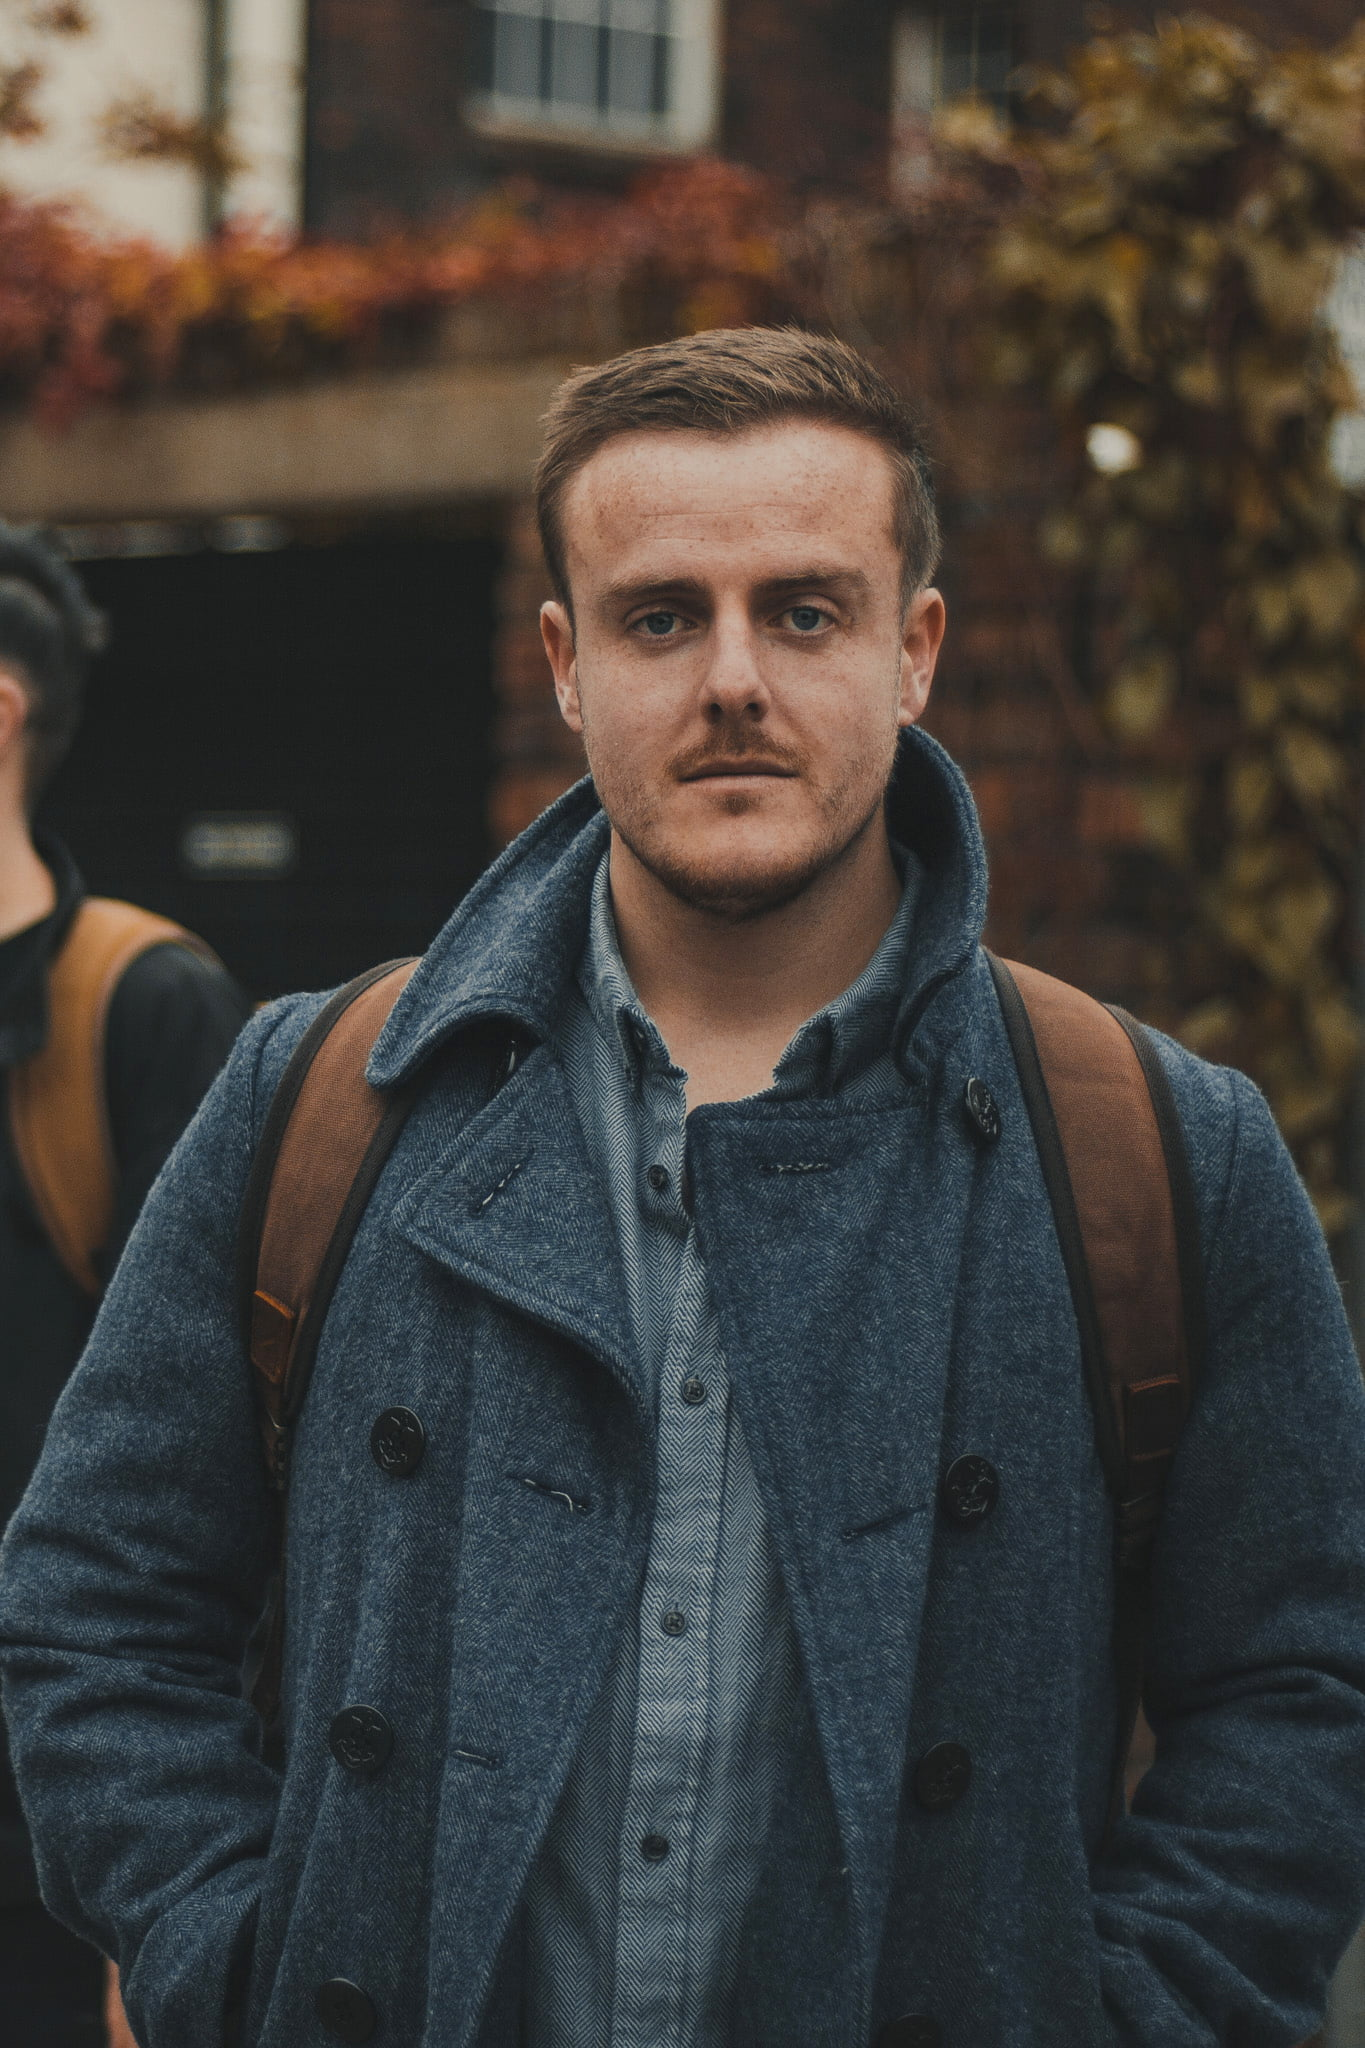 Waxed Cotton Canvas and Leather Backpack Rucksack - Menswear Denim Rugged Style Outfit - Waxed Canvas & Leather Backpacks by Oldfield - Jamie McIlhatton Wylde Coffee Liverpool Heswall